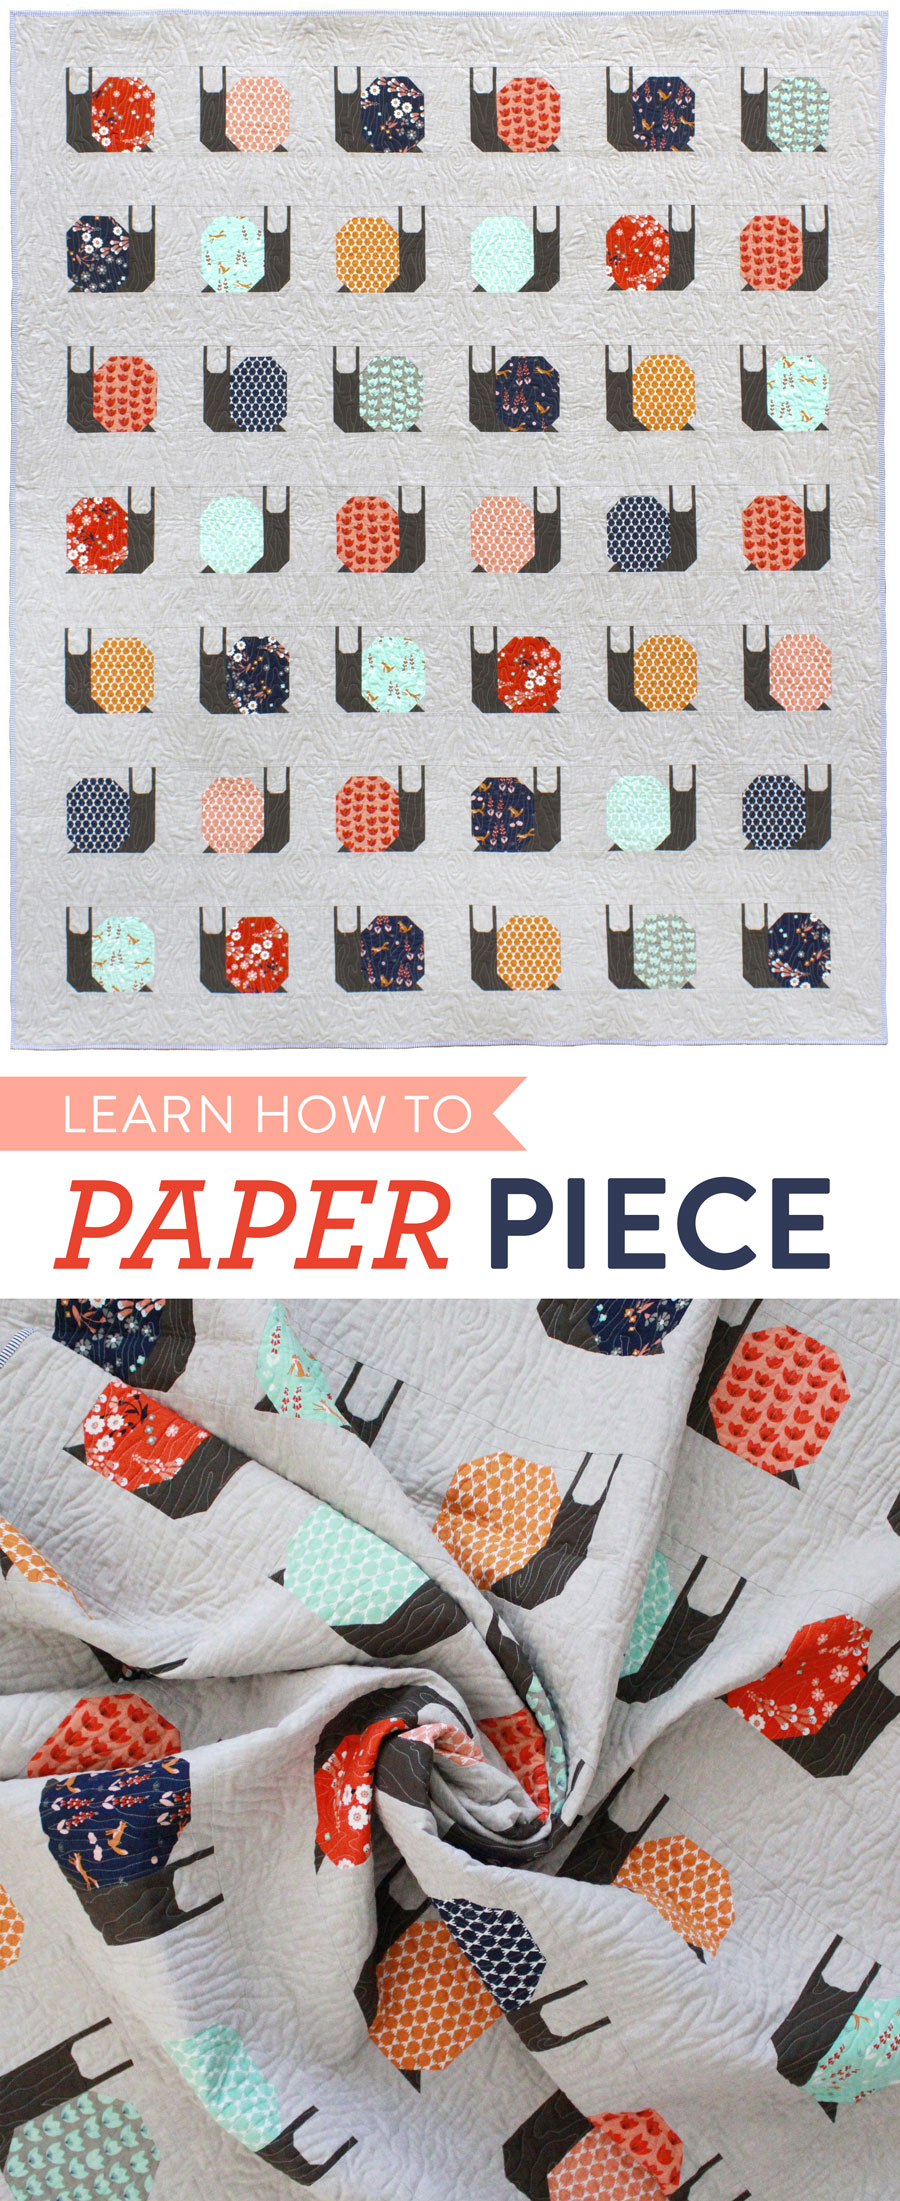 Learn-How-to-Paper-Piece